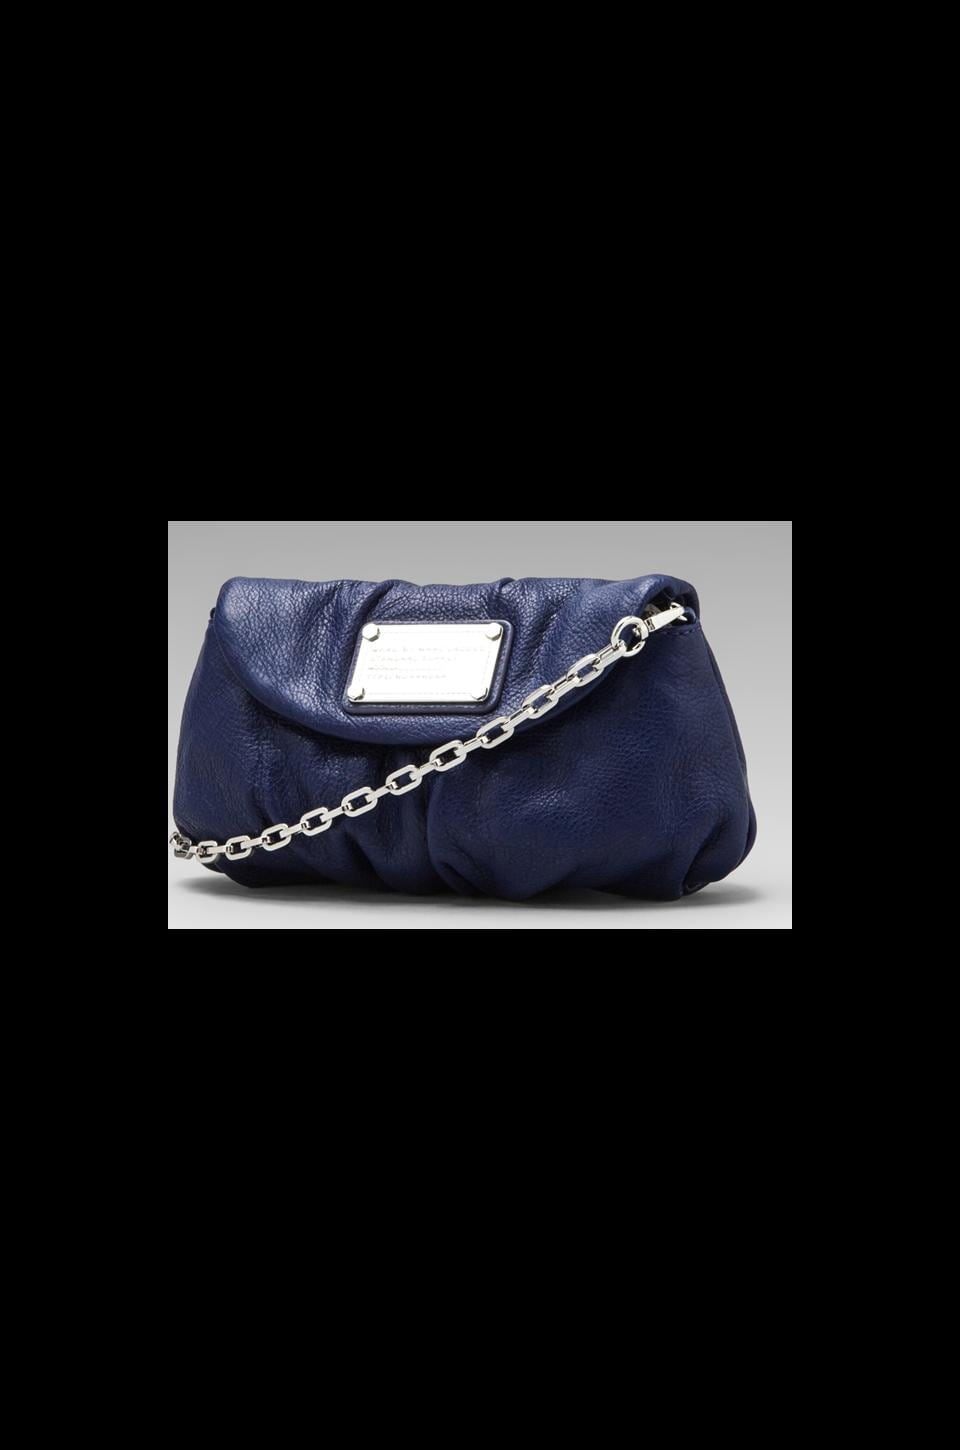 Marc by Marc Jacobs Classic Q Karlie in Electric Stage Blue